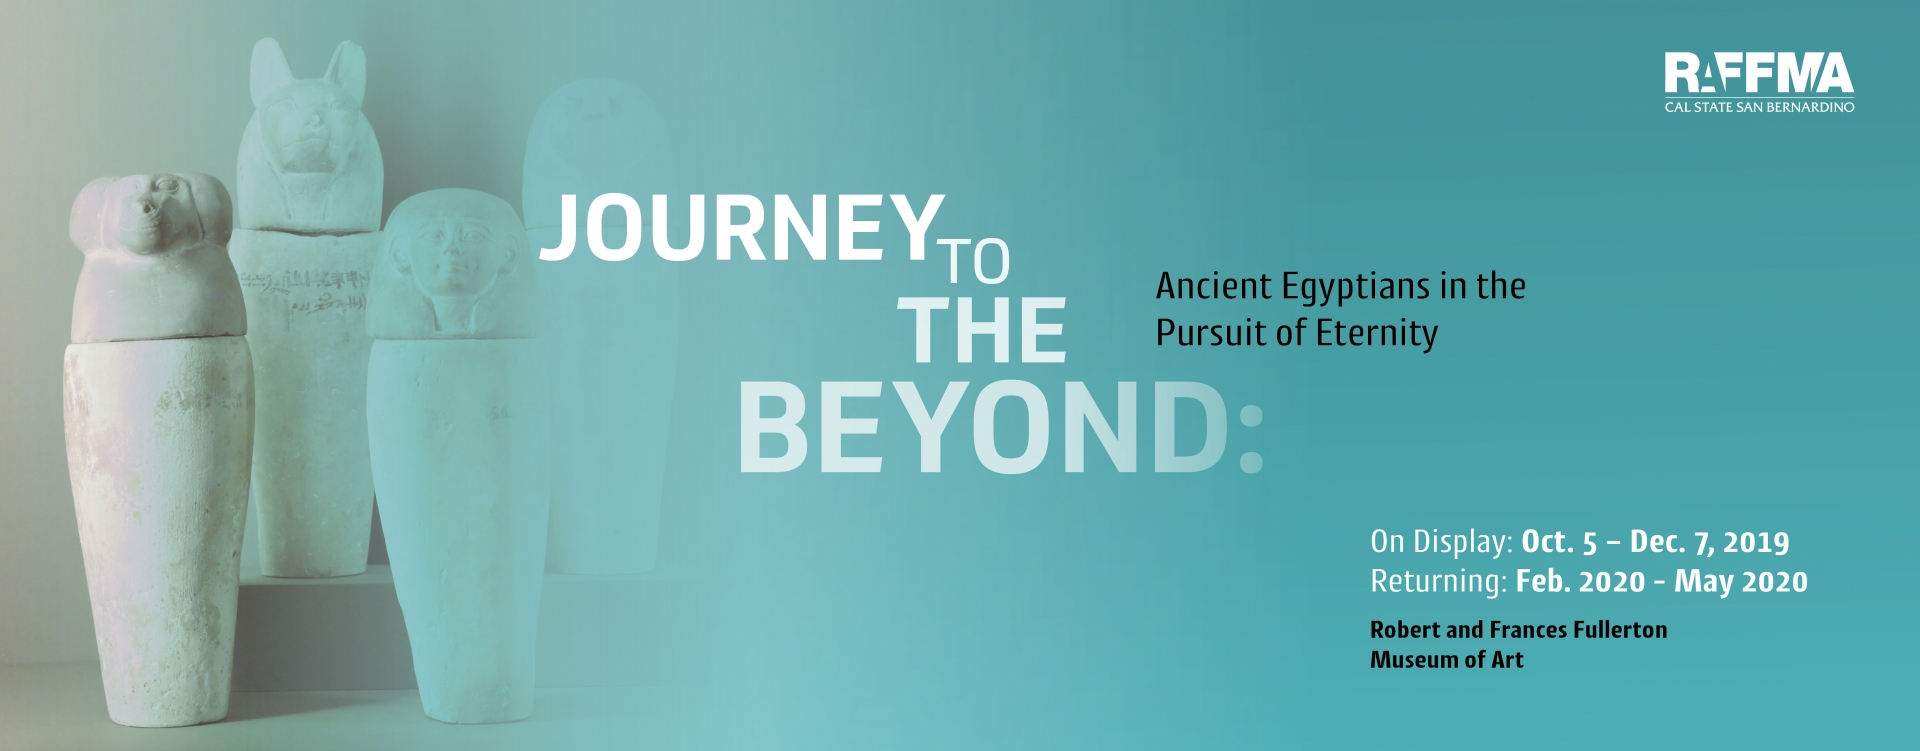 Journey to Beyond Ad